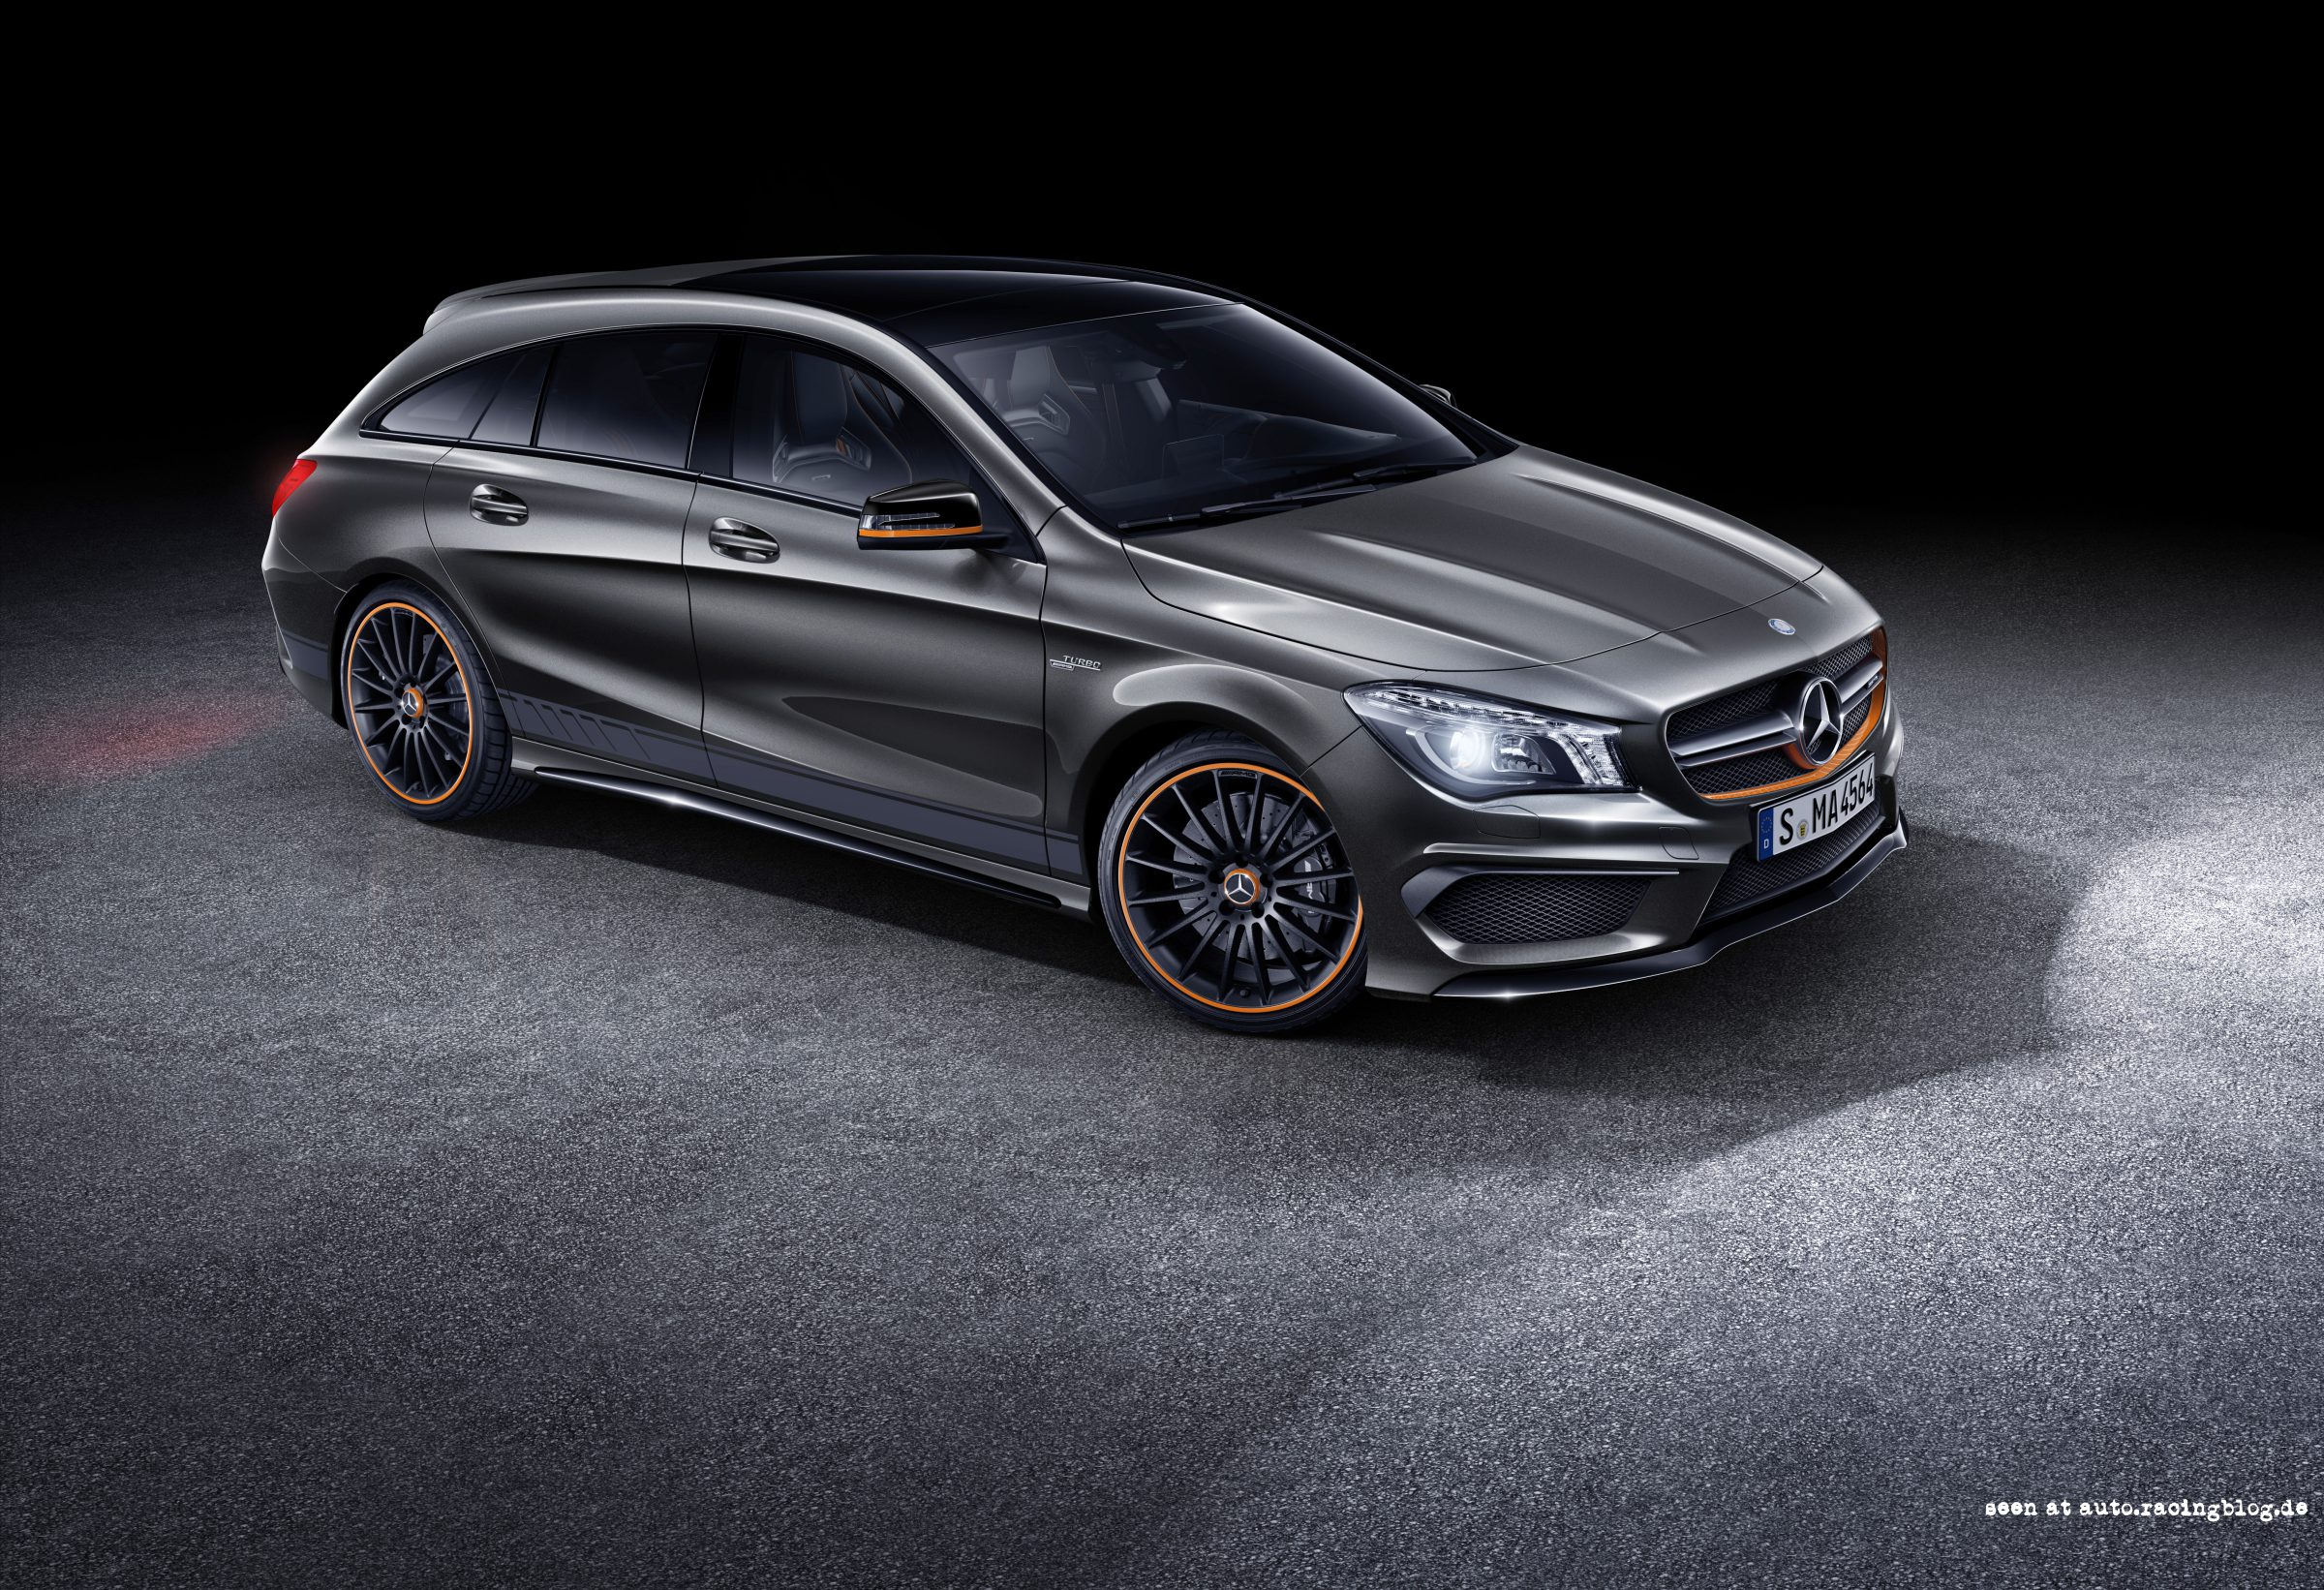 mercedes amg cla 45 shooting brake x 117 2014 racingblog cars. Black Bedroom Furniture Sets. Home Design Ideas